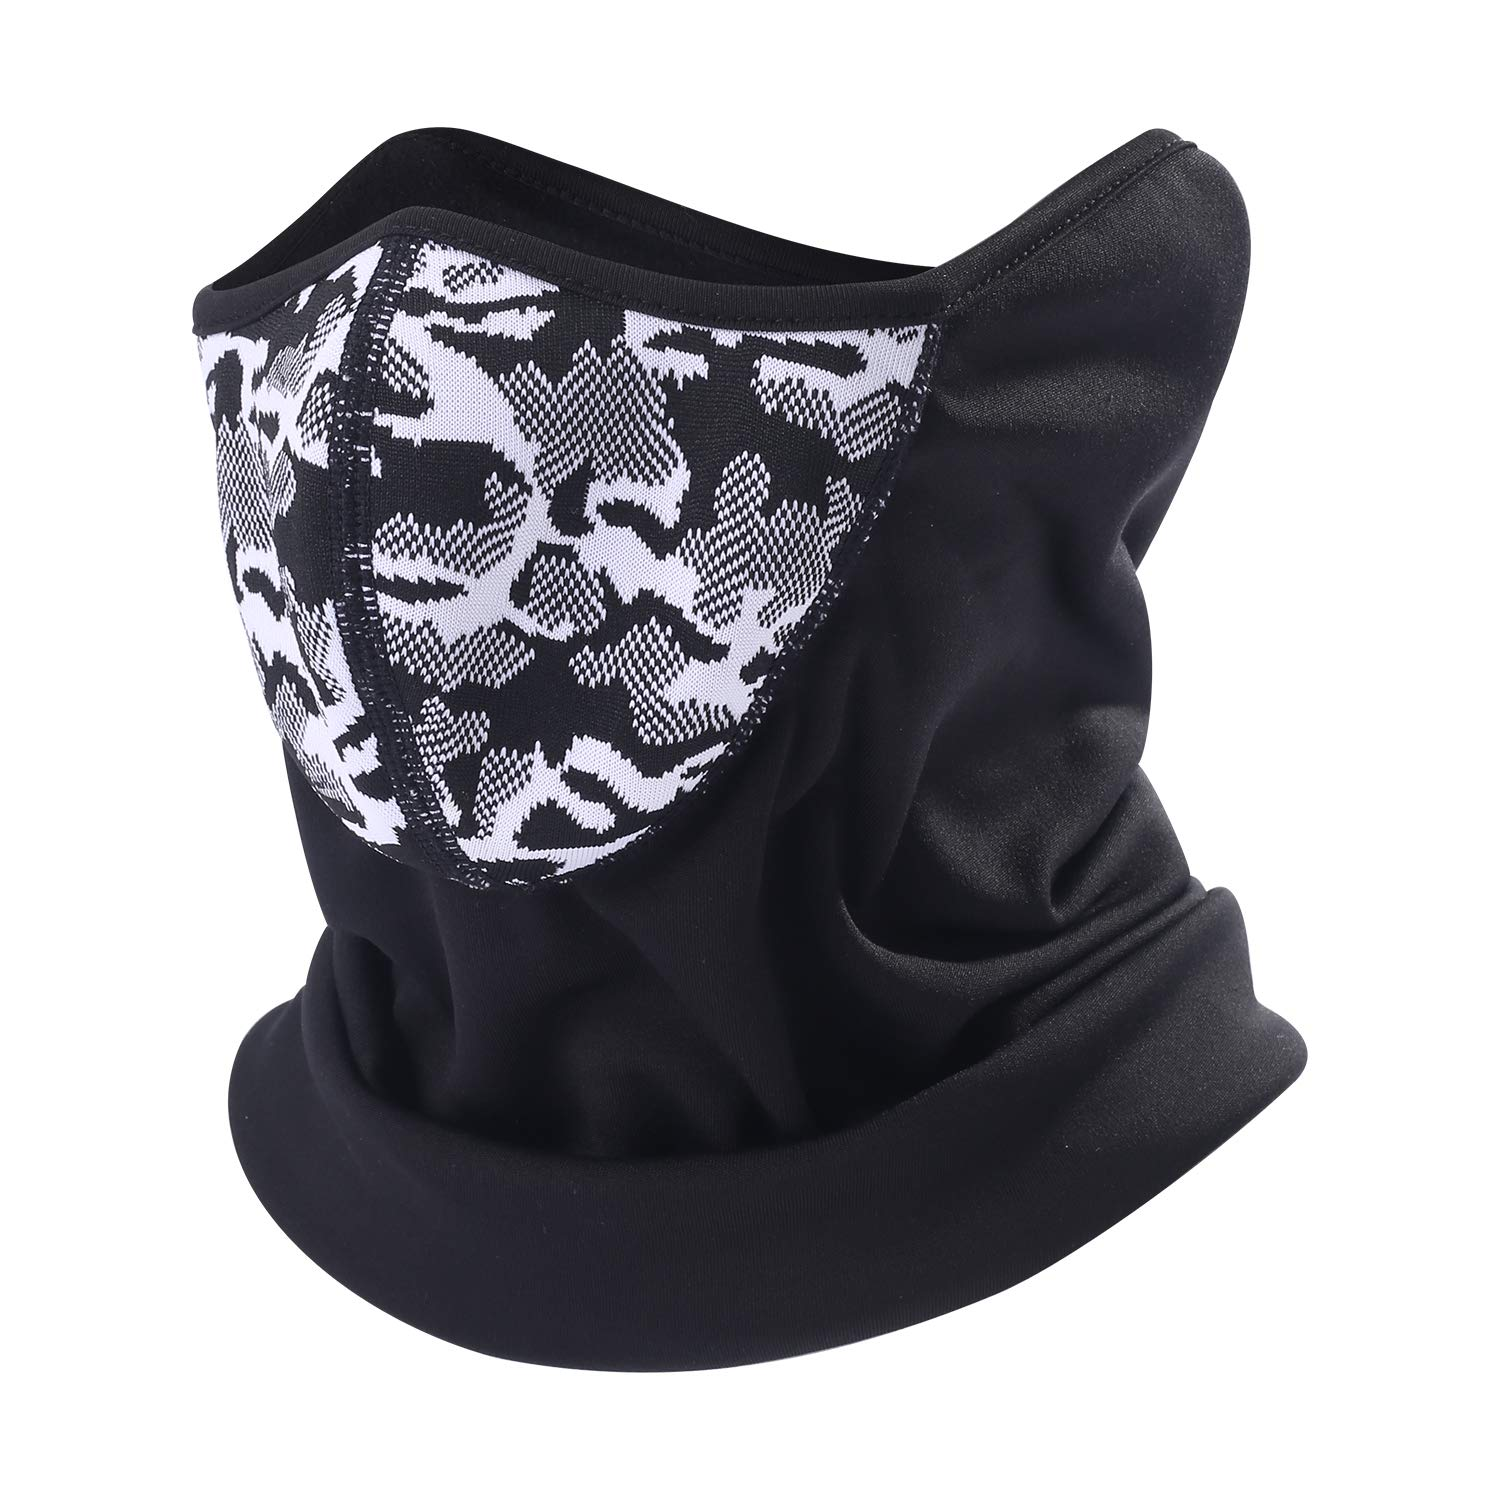 Motorcycle Ltd AIWOLU Cold Weather Ski Face Mask for Men Thermal Fleece Balaclava Hood for Skiing Snowboard Snowmobile Walking and More Outdoor Sports Guangzhou Sujie Sports Zhuangbei CO